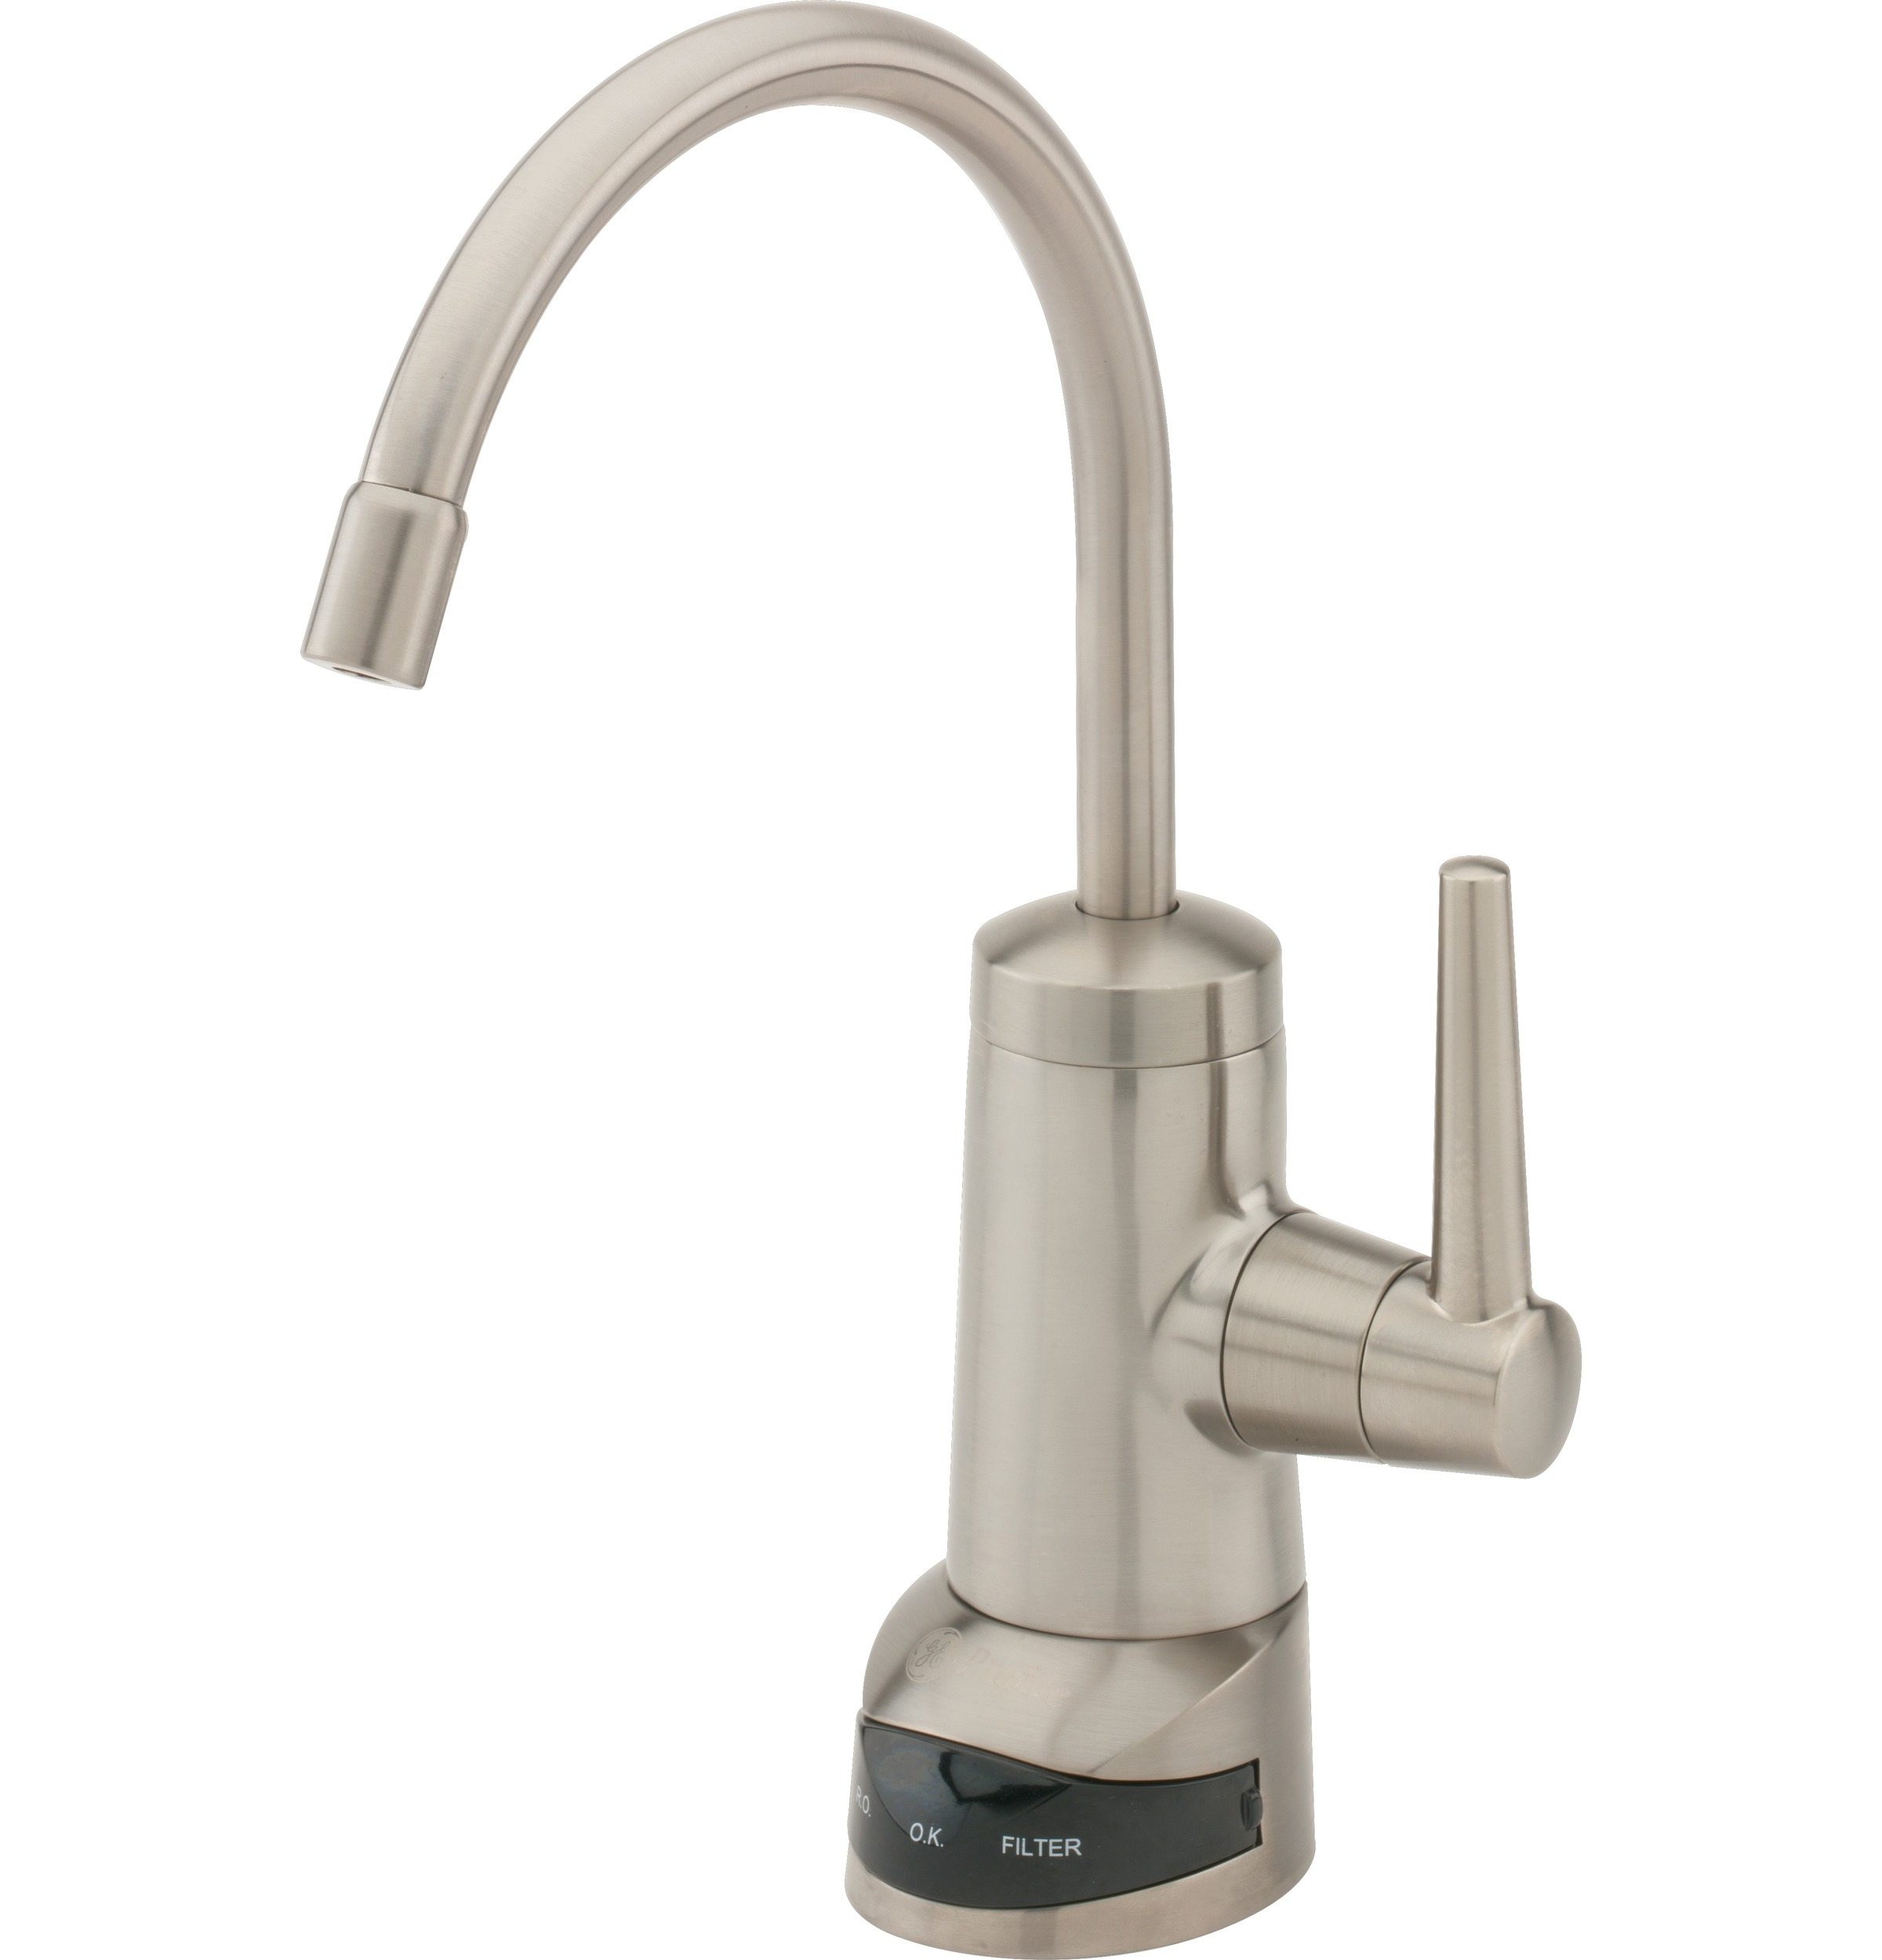 Ideas, ge reverse osmosis water filtration system with design faucet ge reverse osmosis water filtration system with design faucet ge profile reverse osmosis filtration system with brushed nickel 2400 x 2500 2  .